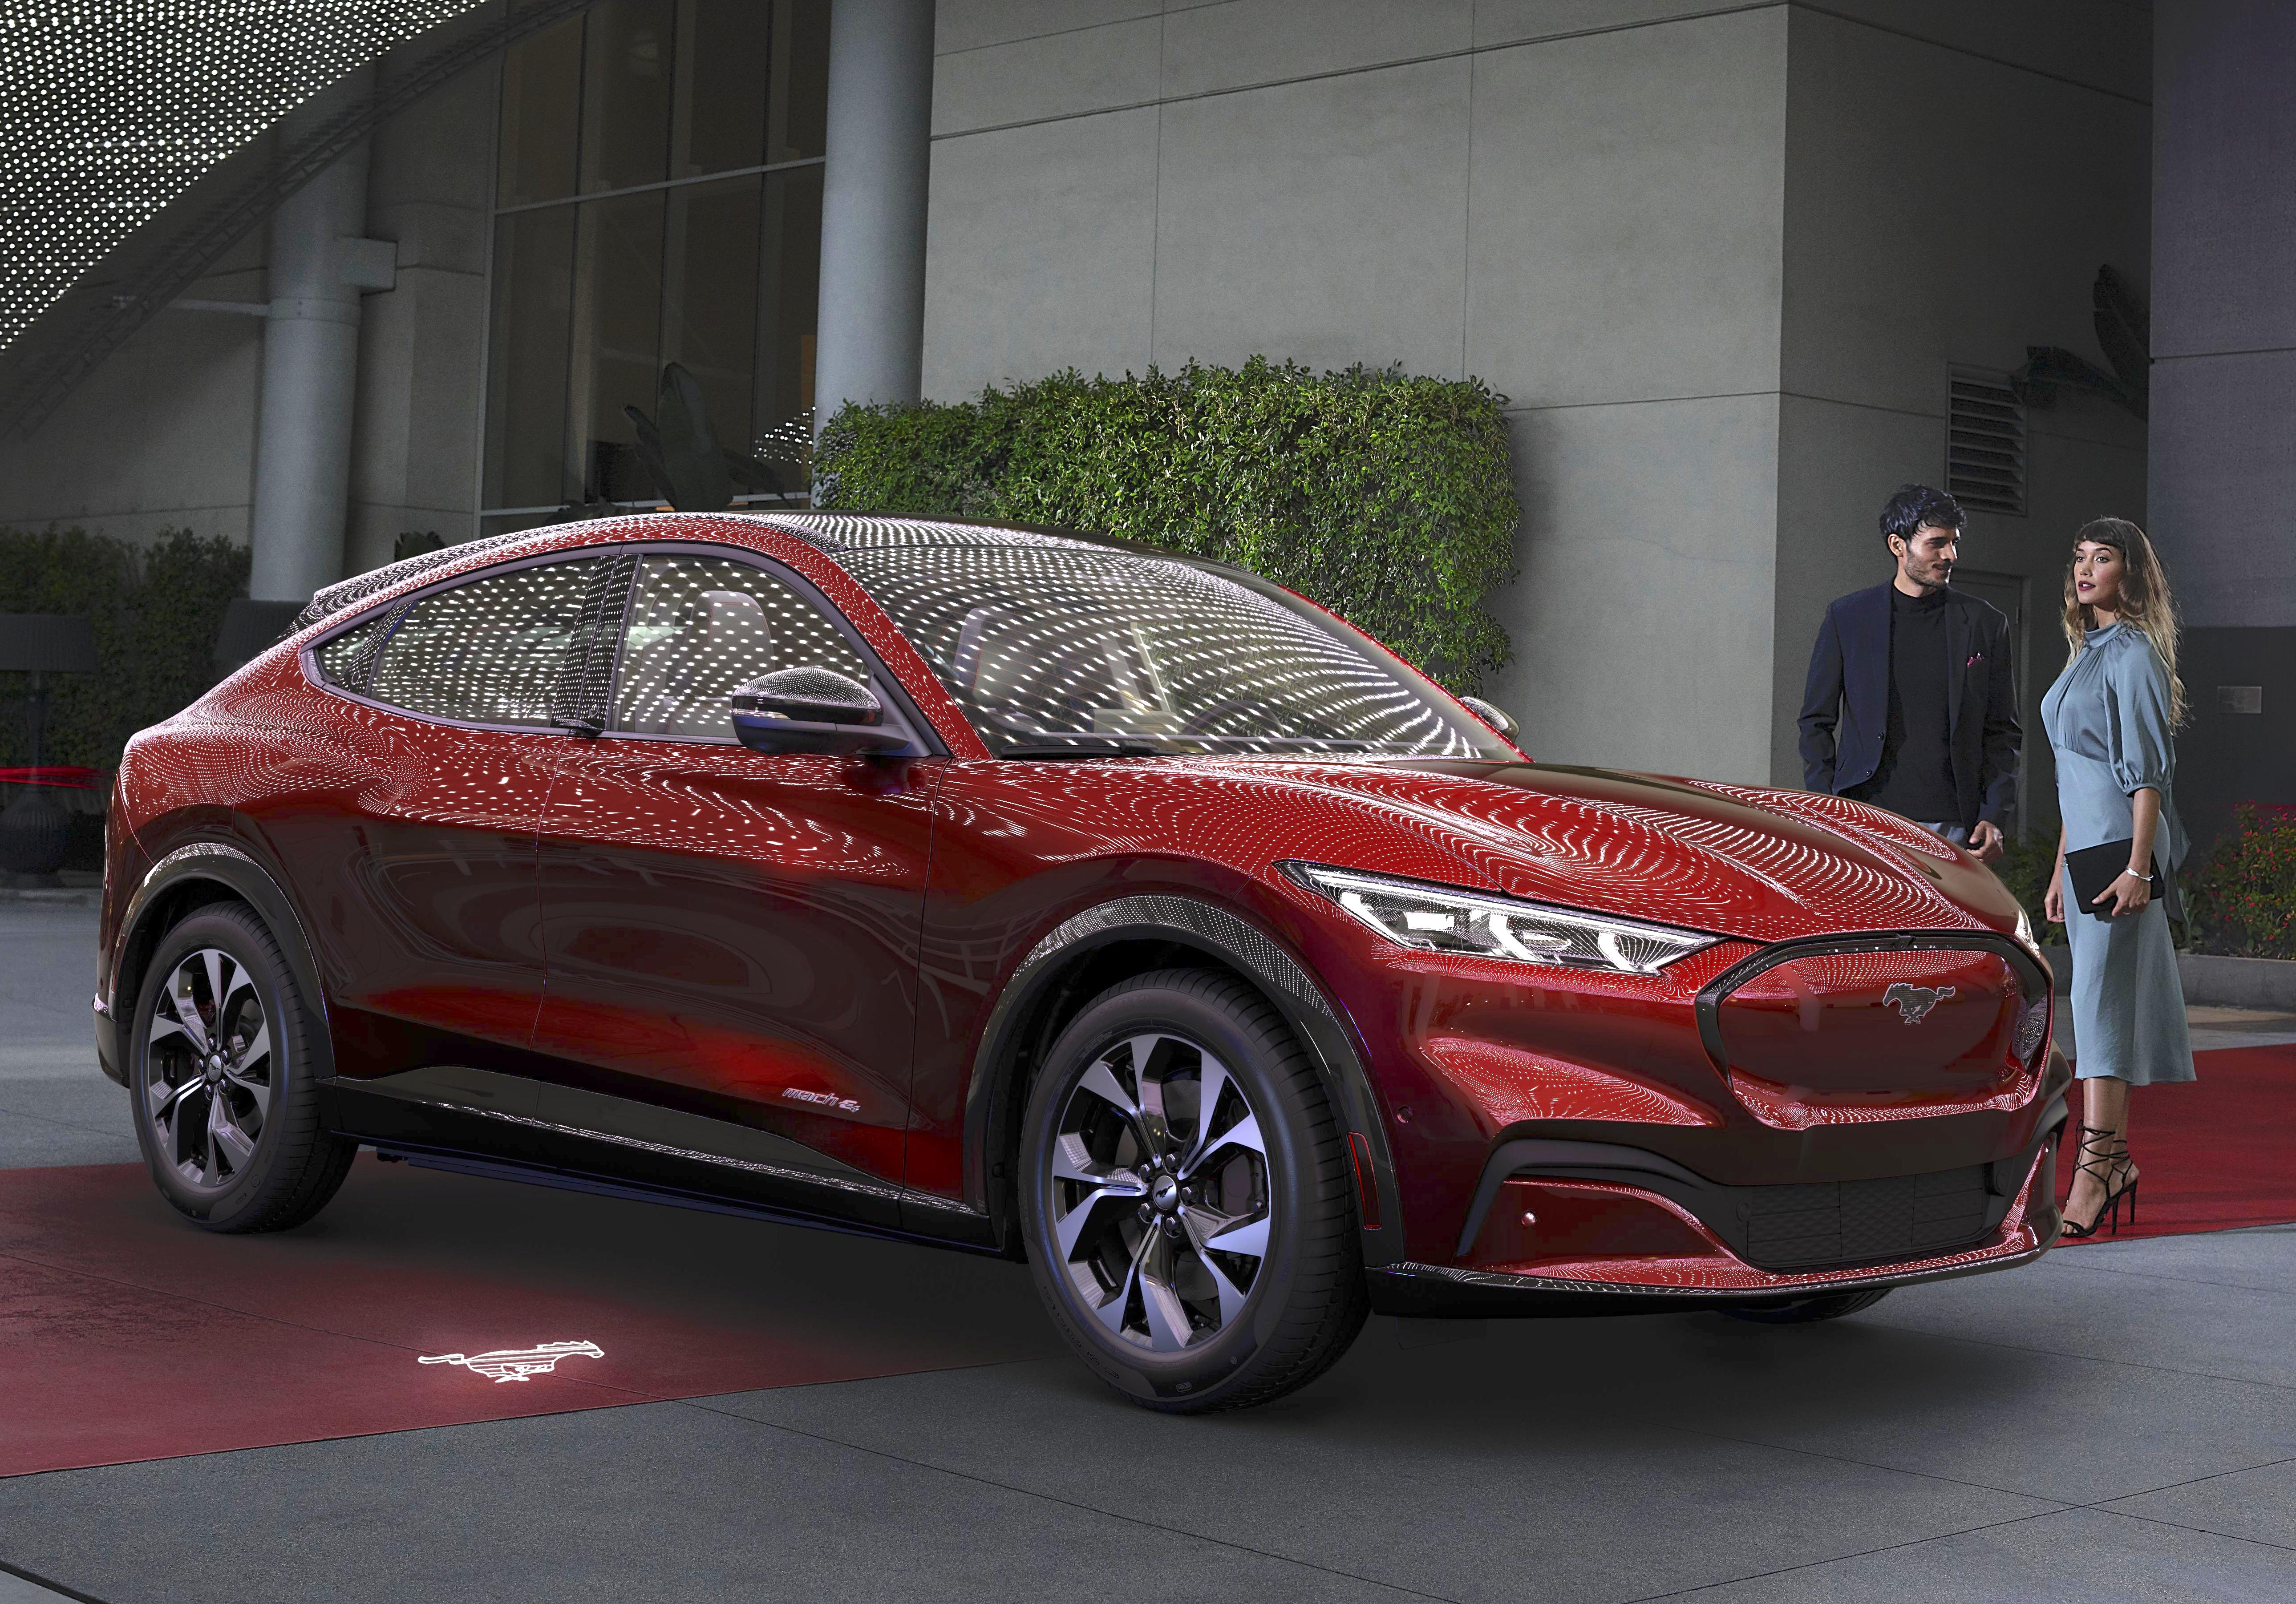 Ford Unveils Battery Electric Mustang Mach E Crossover Suv Designnews Com